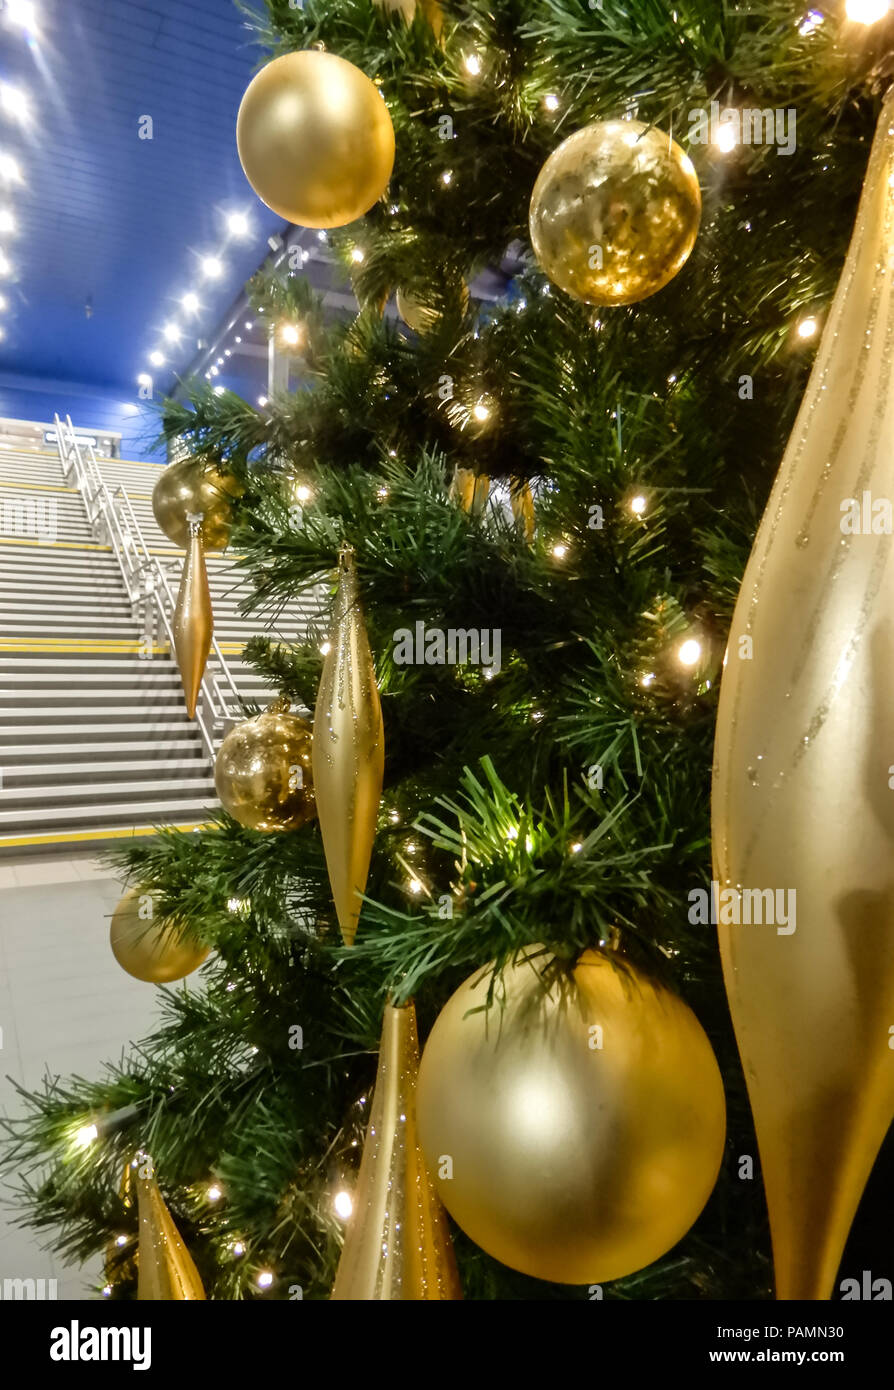 reading united kingdom january 02 2018 the christmas tree at reading train station with the steps to the over platform bridge in the background